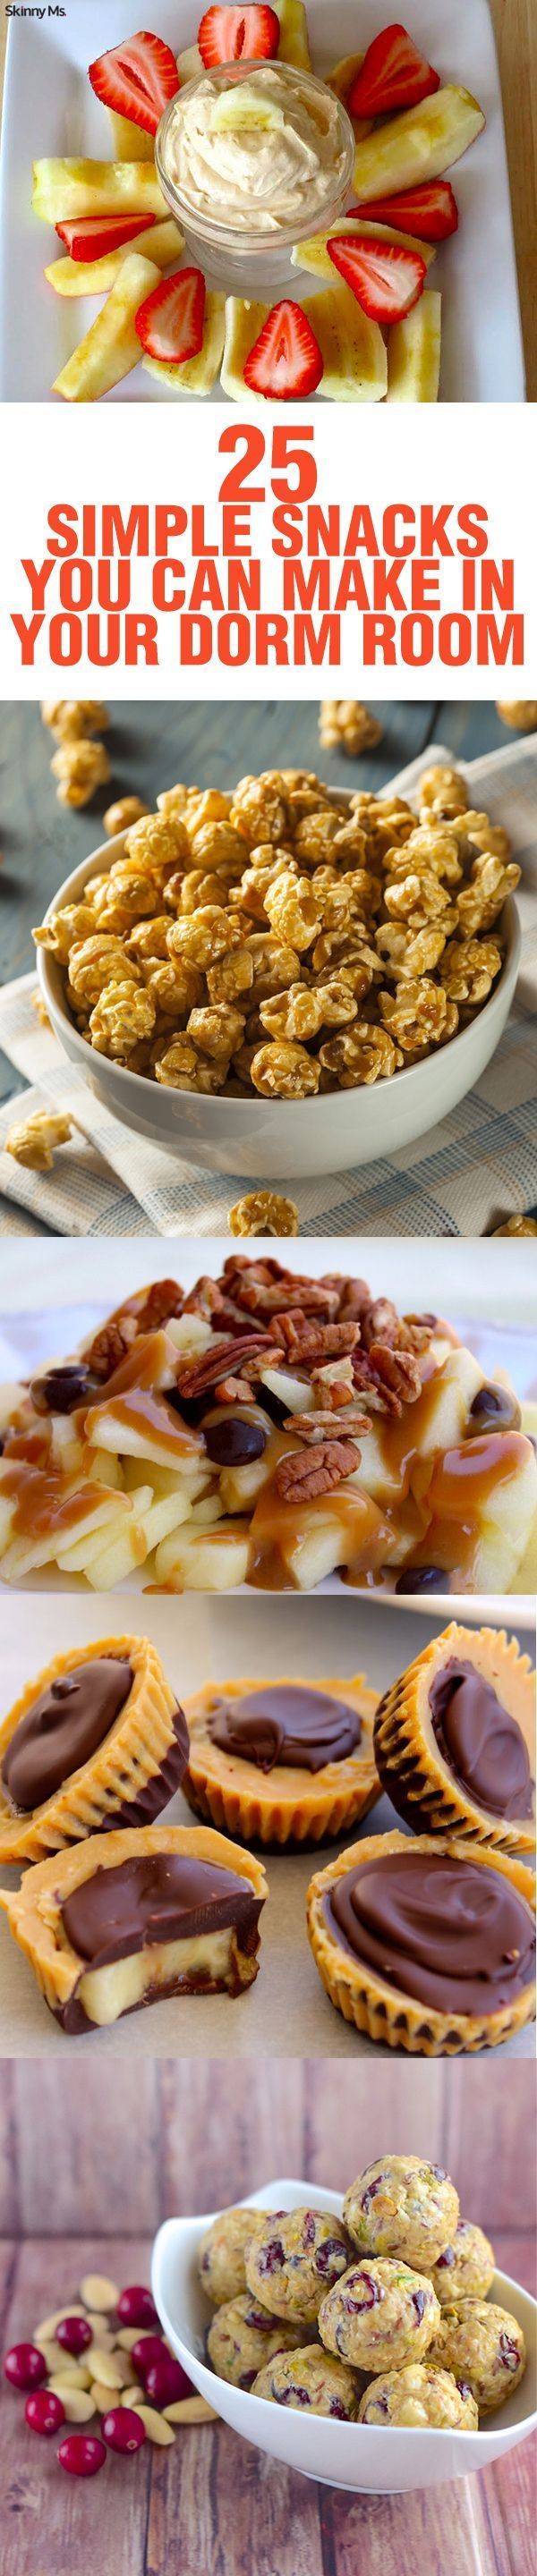 25 Simple Snacks You Can Make In Your Dorm Room! Part 90